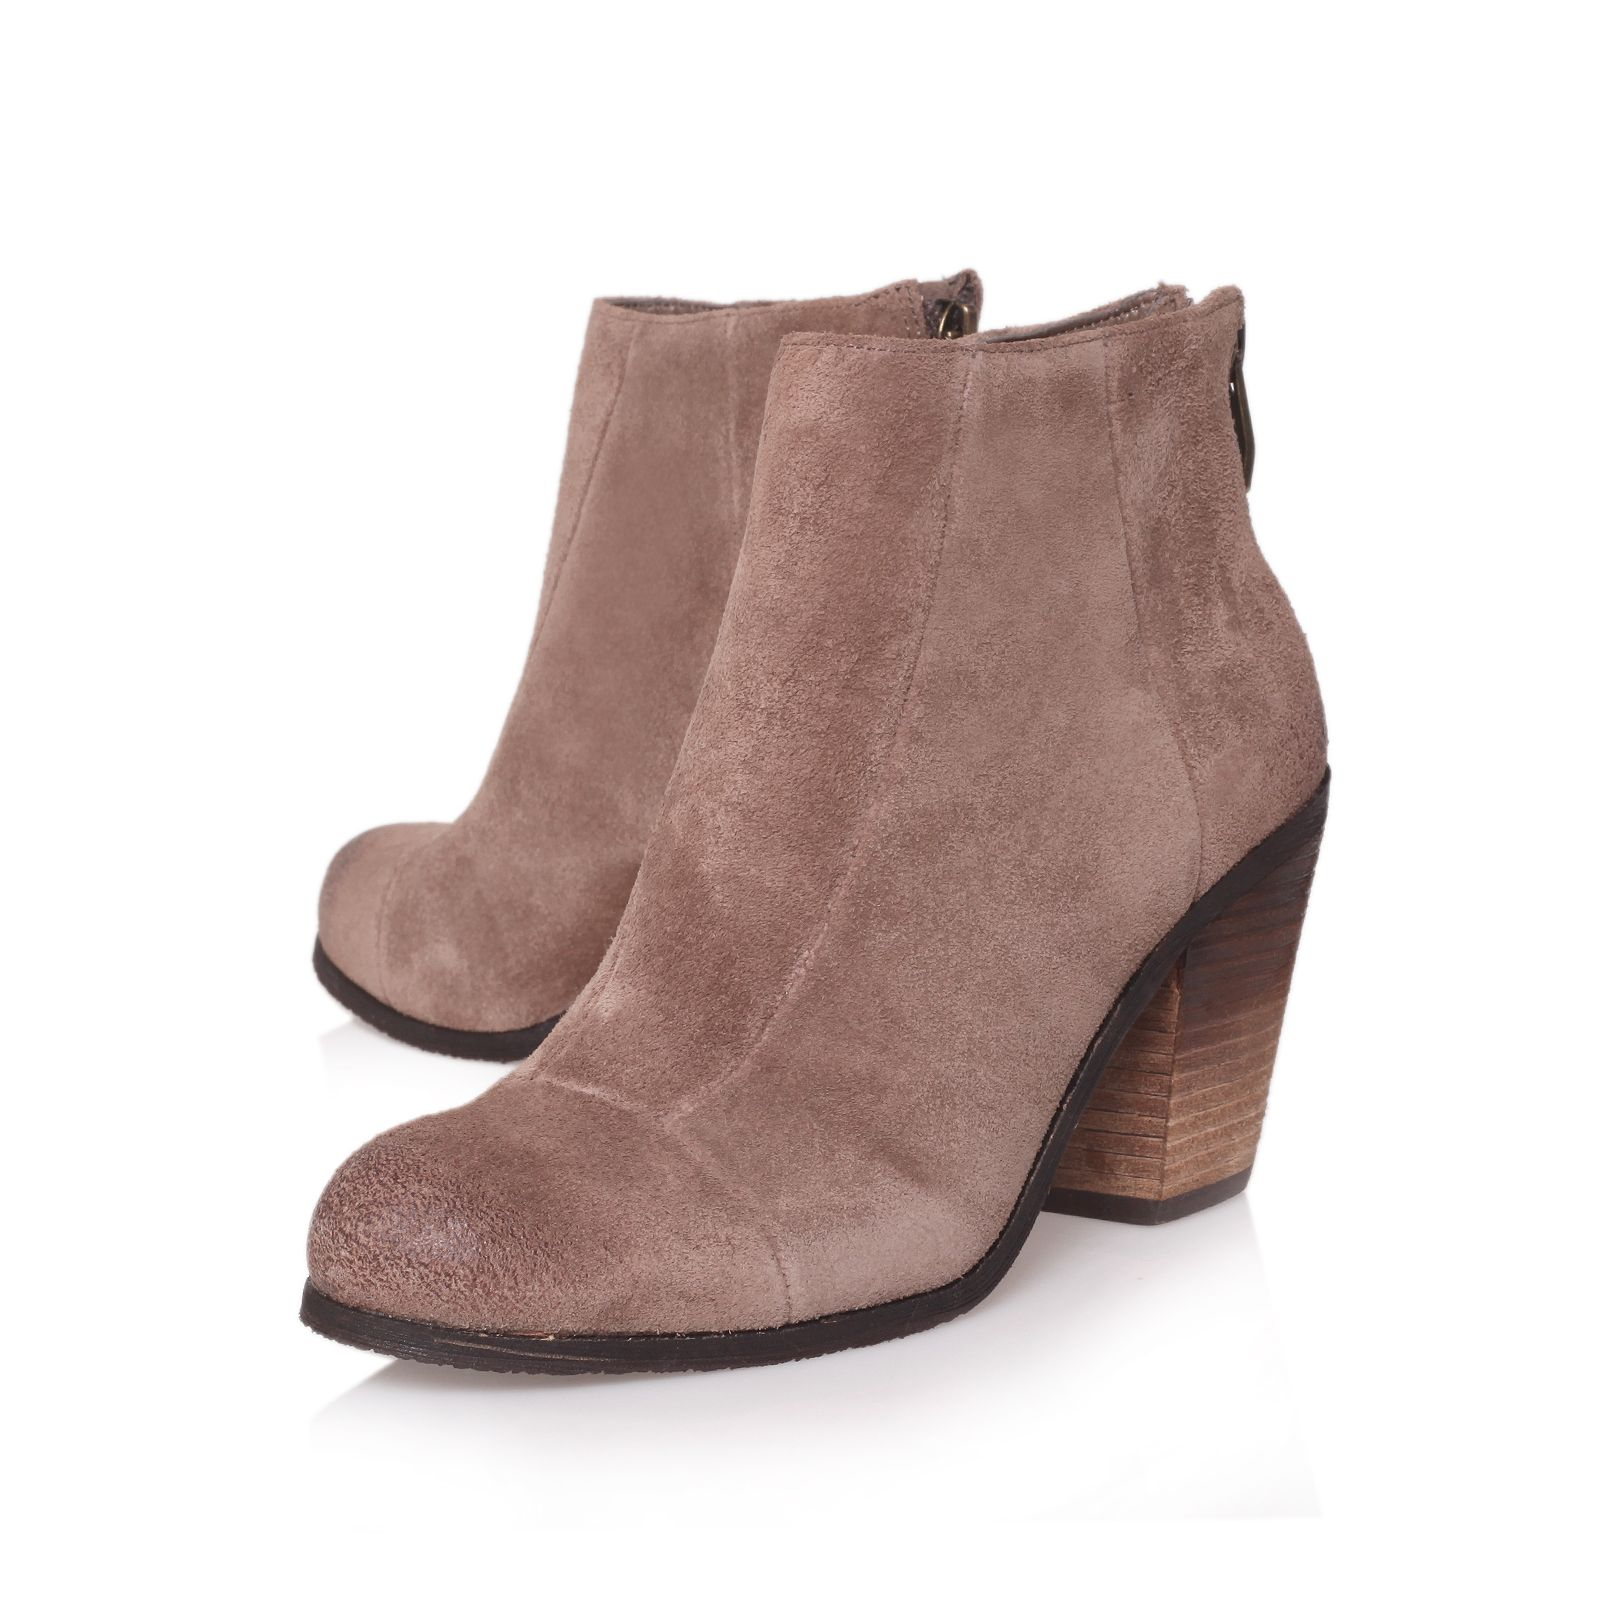 Vince Camuto Graysen Ankle Boots in Taupe (Pink)